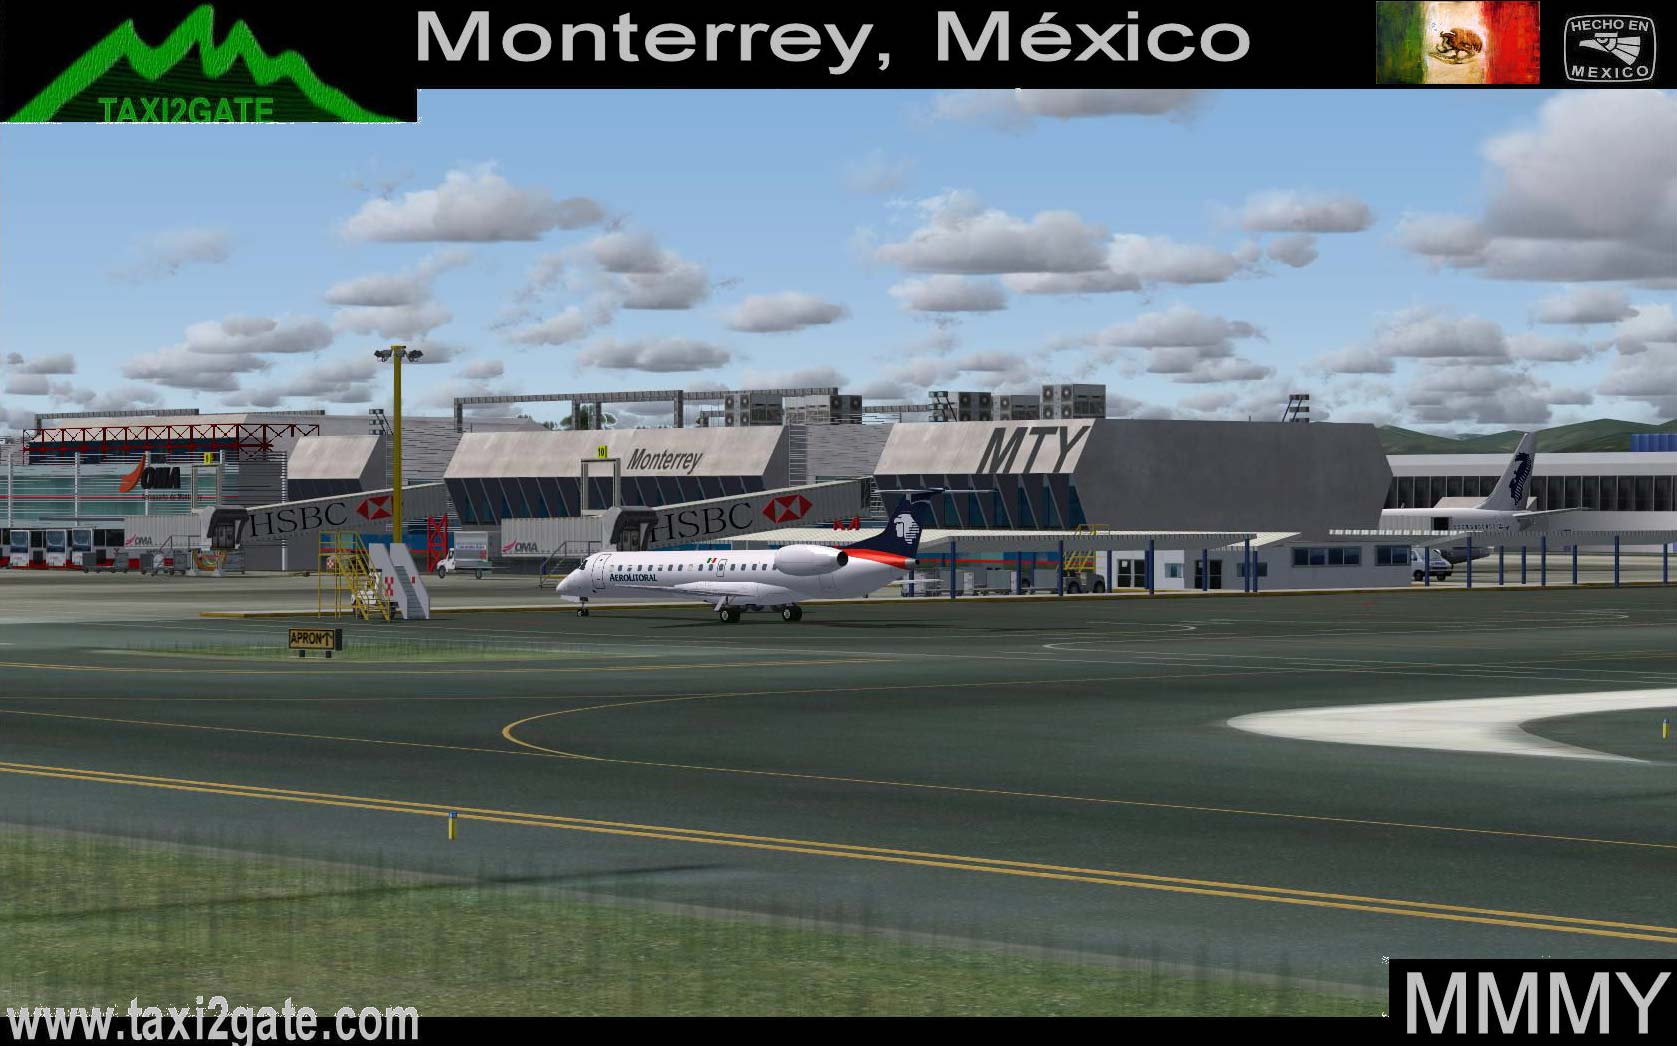 Aeroporto Monterrey : Taxi gate monterrey mmmy v is the th most